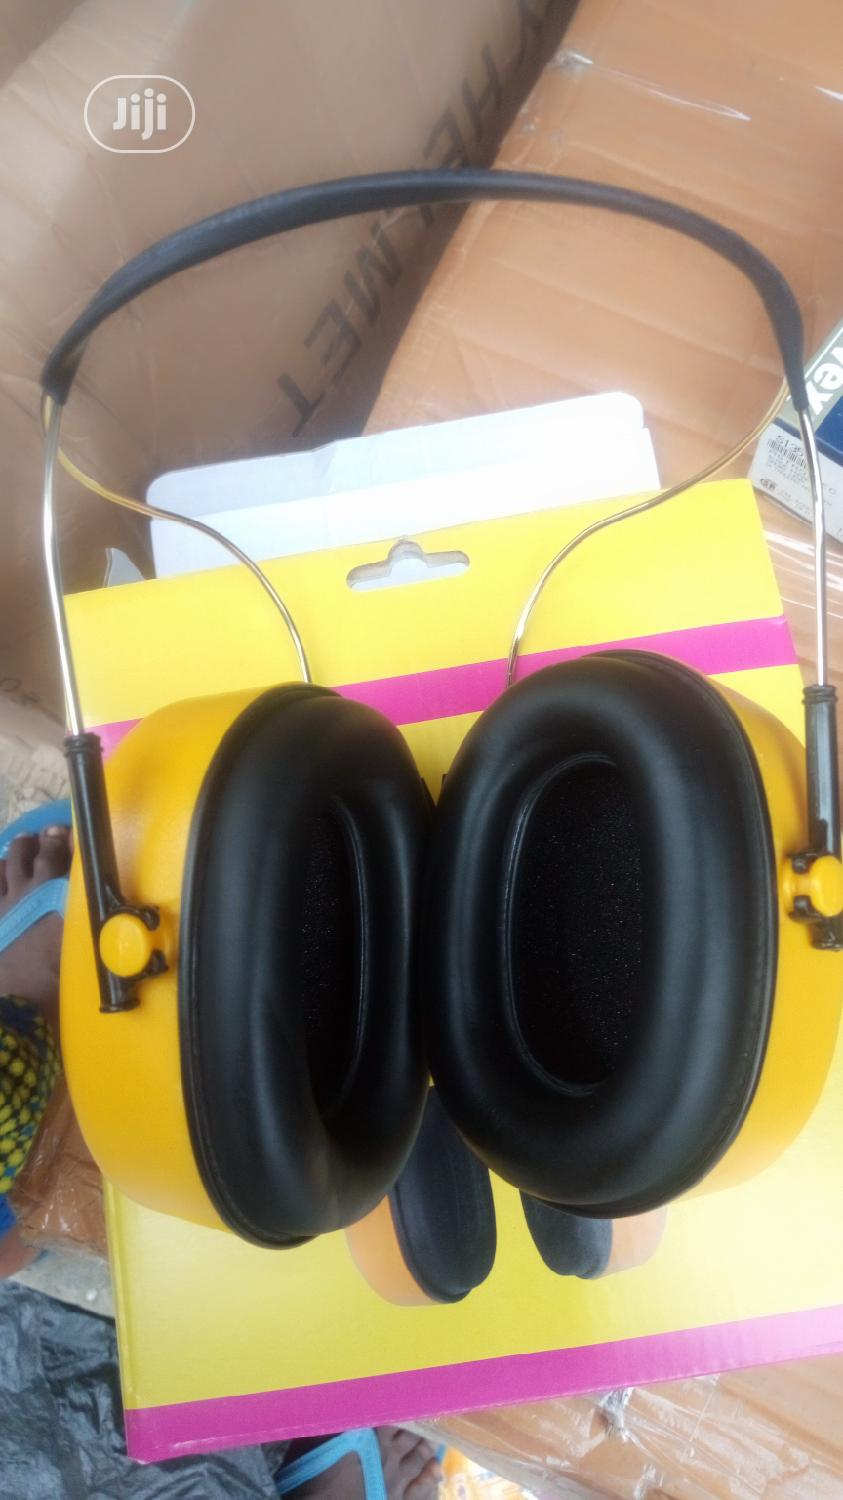 Sound Proof Ear Muff | Safety Equipment for sale in Lagos Island, Lagos State, Nigeria